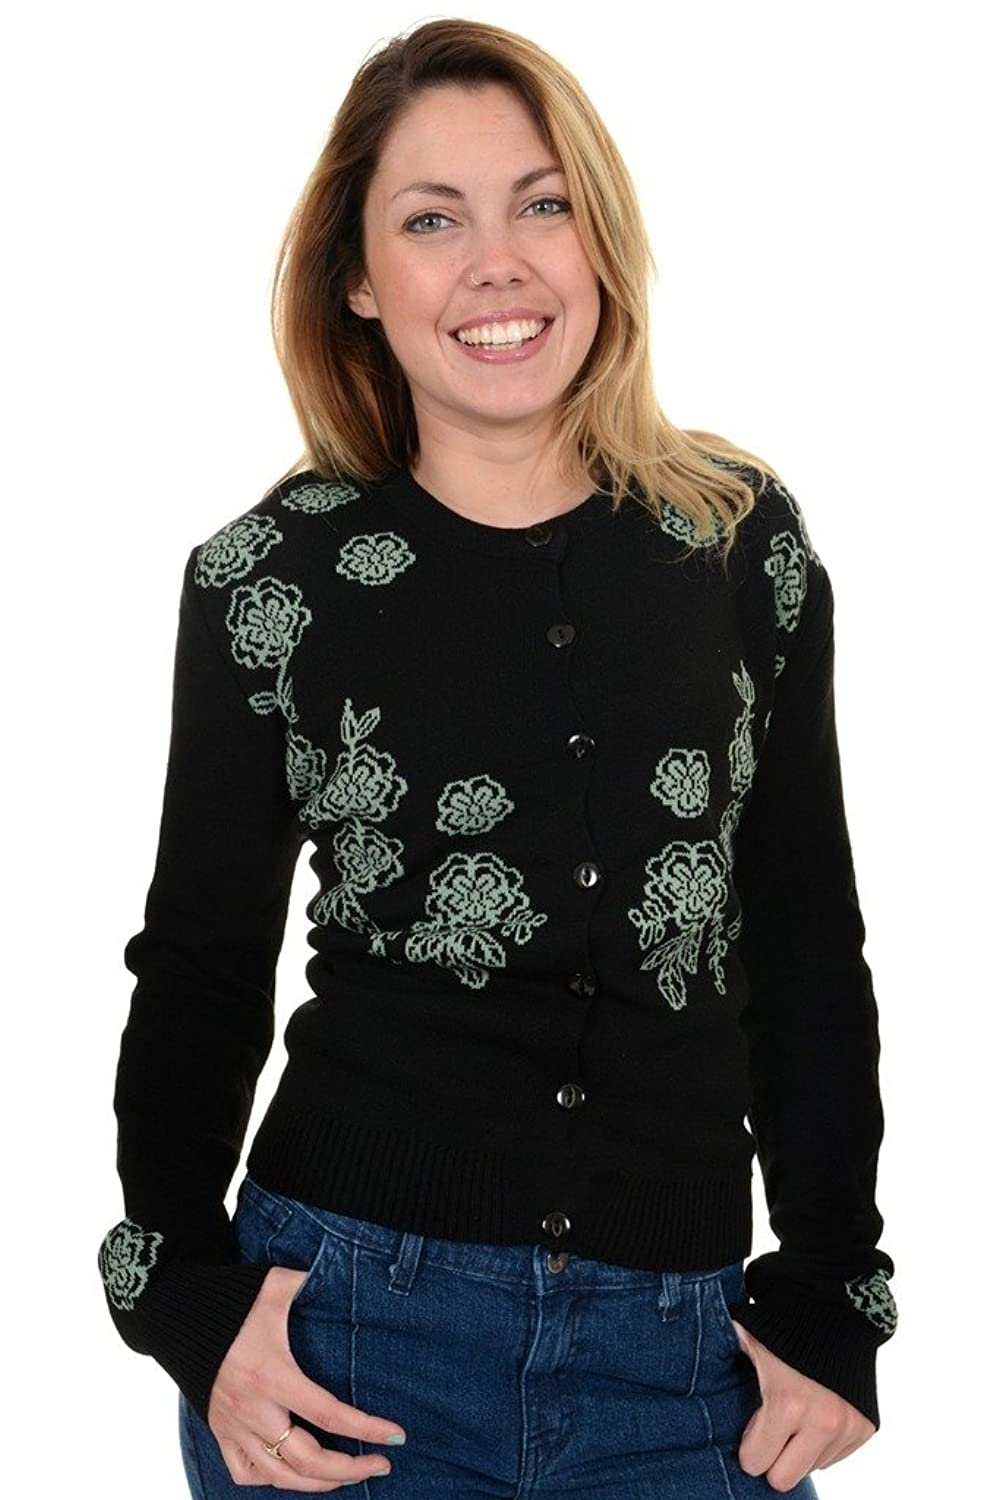 1960s Style Sweaters & Cardigans  50s 60s Retro New Vintage Black & Mint Floral Cardigan $34.95 AT vintagedancer.com